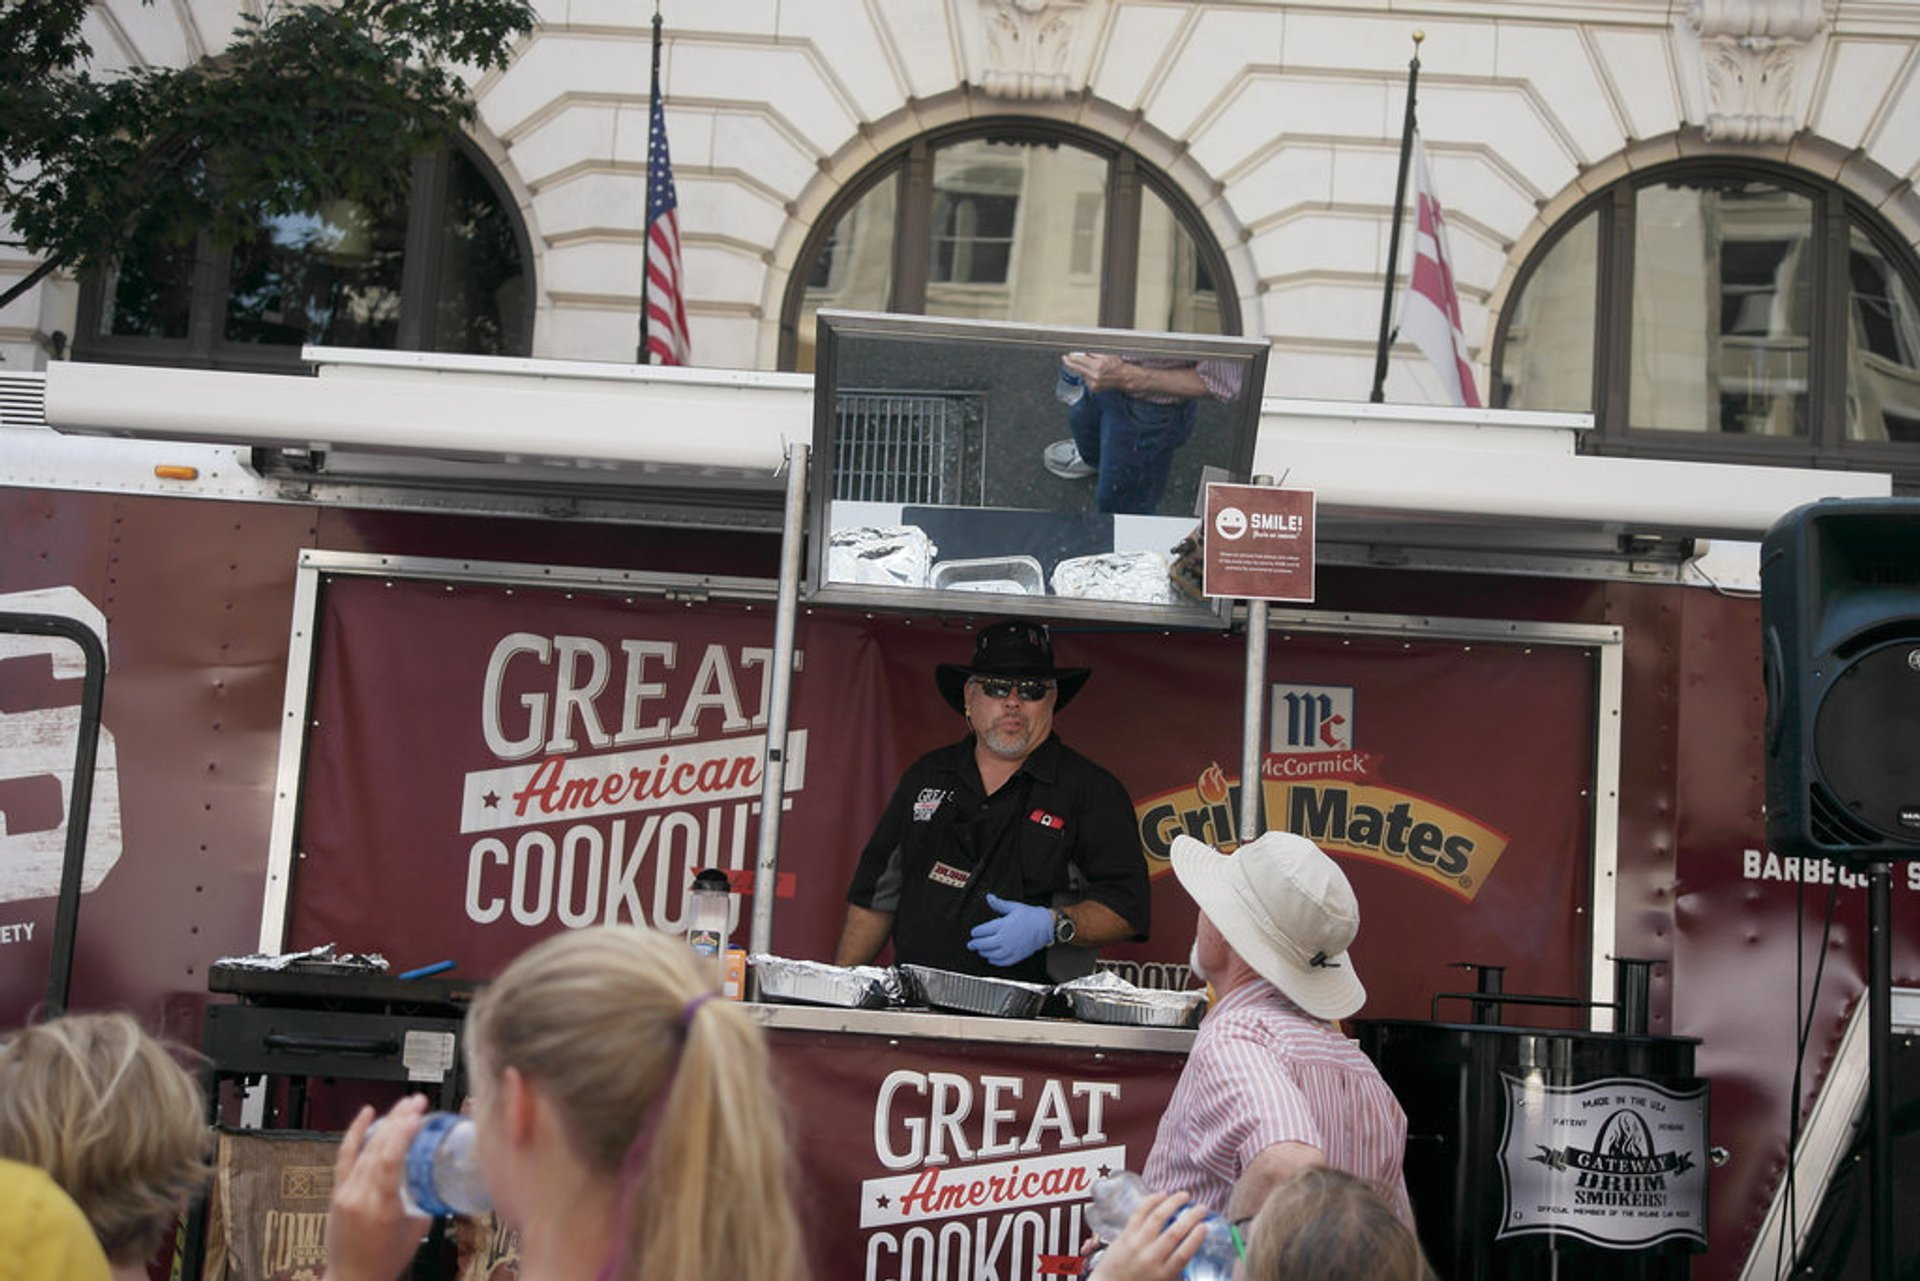 National Giant Capital Barbecue Battle in Washington, D.C. - Best Season 2019